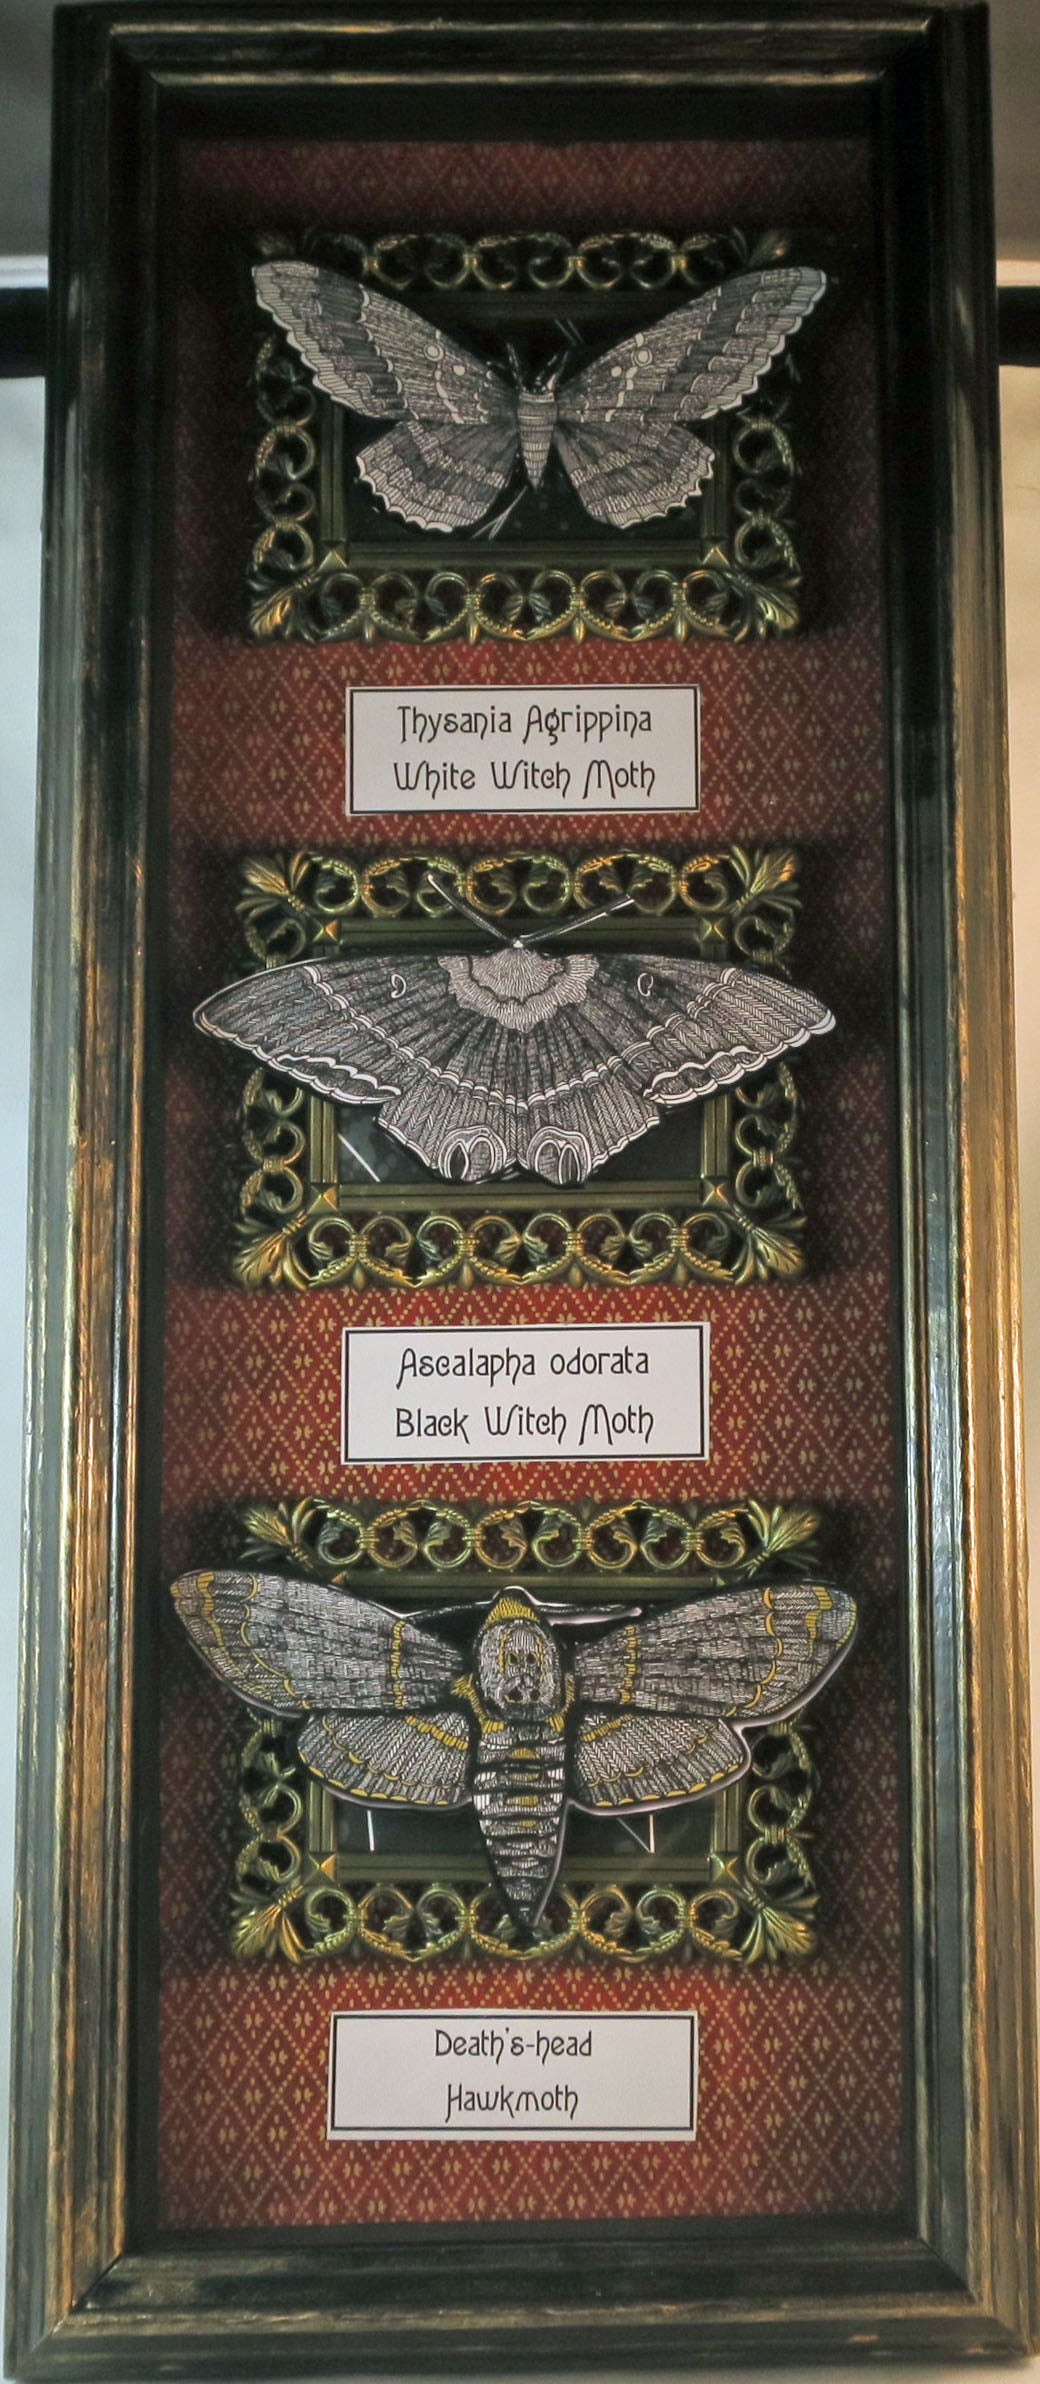 Moth Shadowbox - white and black witch moth and death's head moth